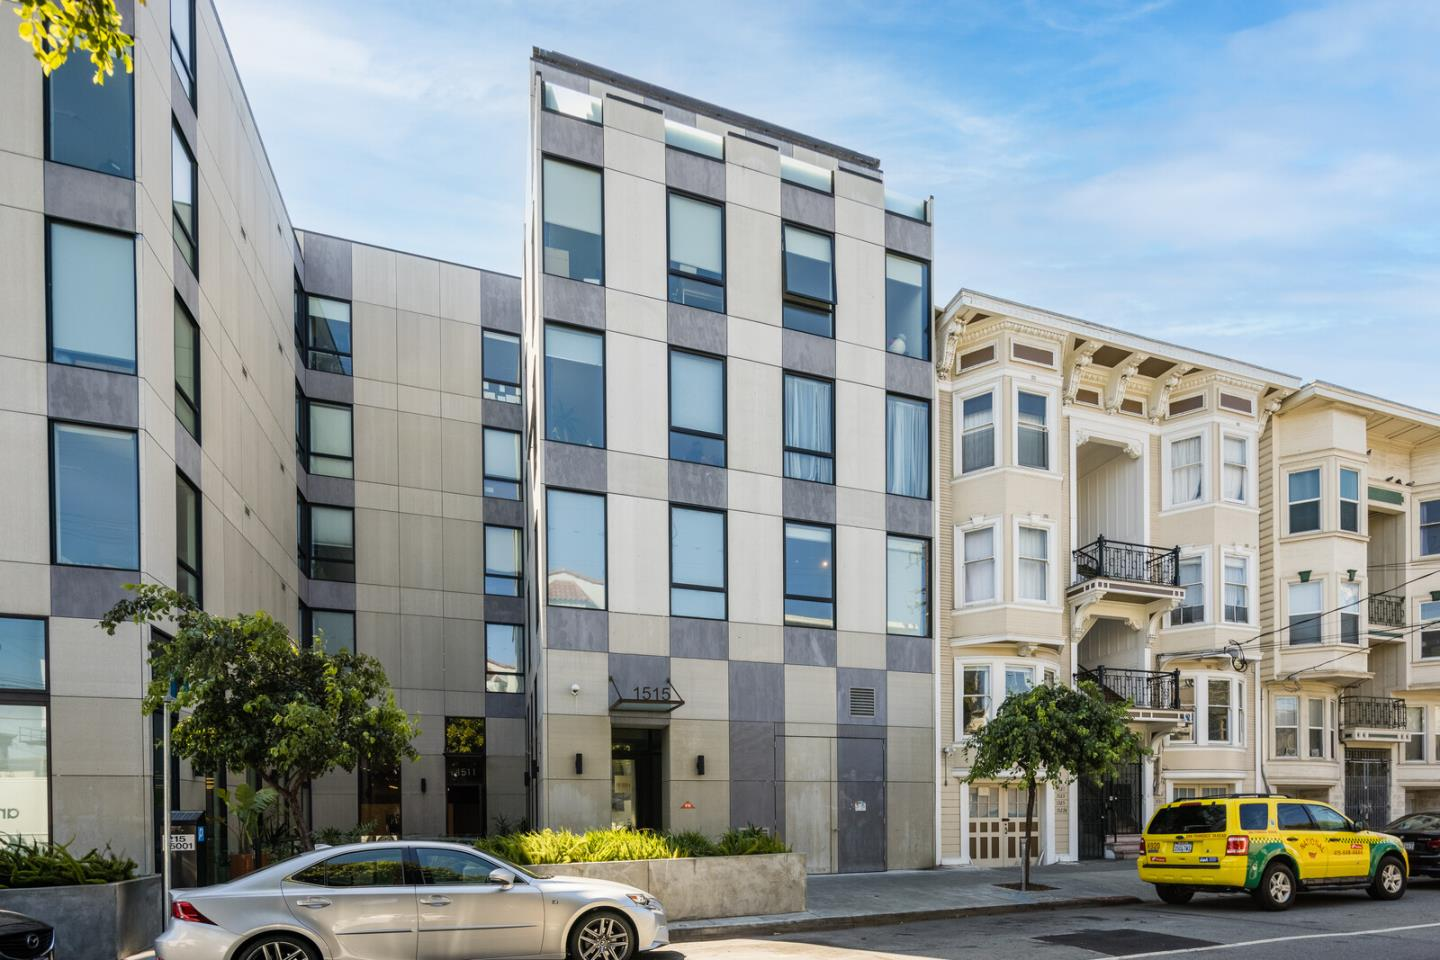 Upscale 1-Bedroom House In Mission District